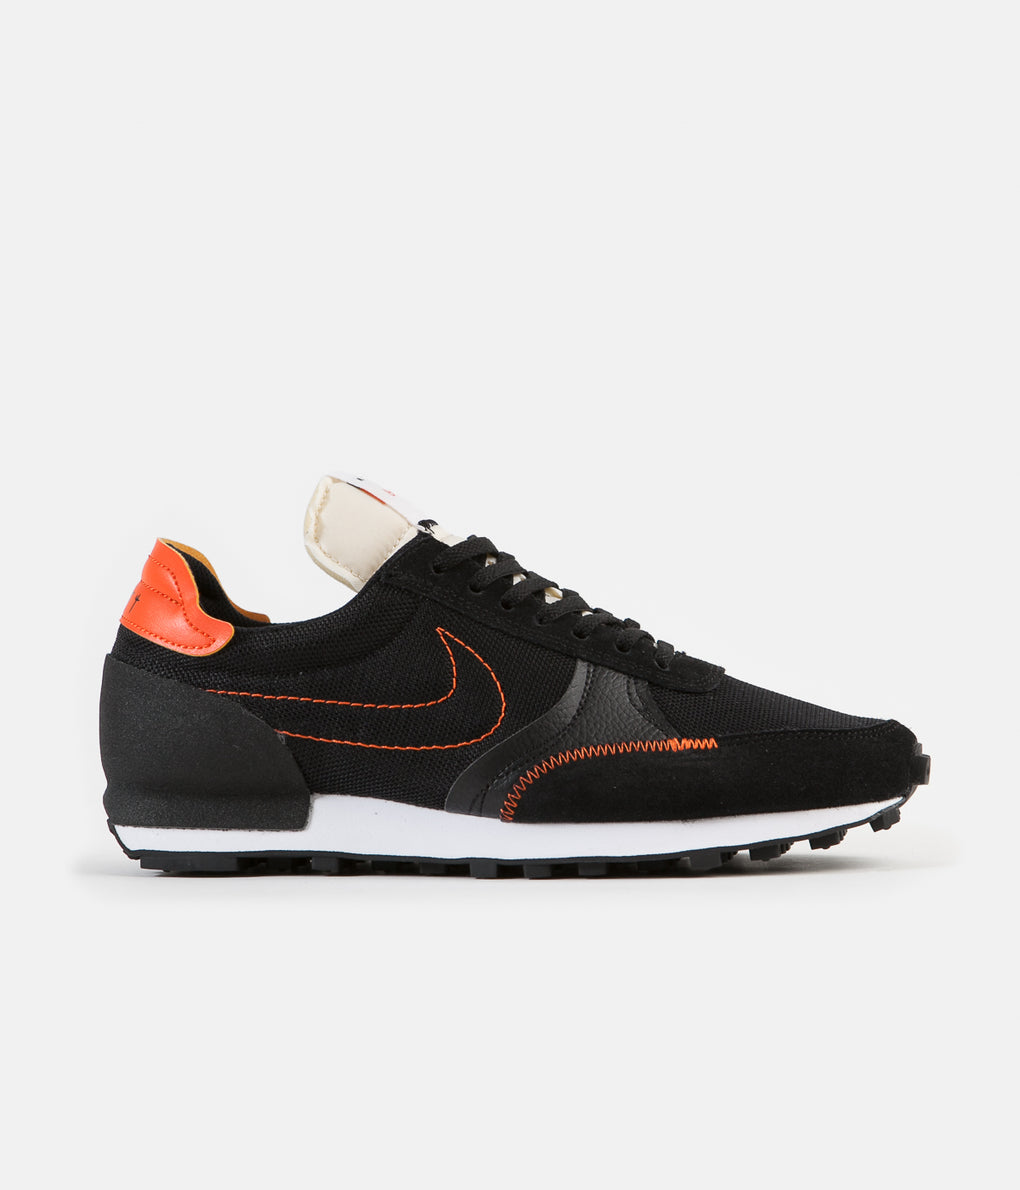 Nike Daybreak Type Shoes - Black / Team Orange - Sail - White